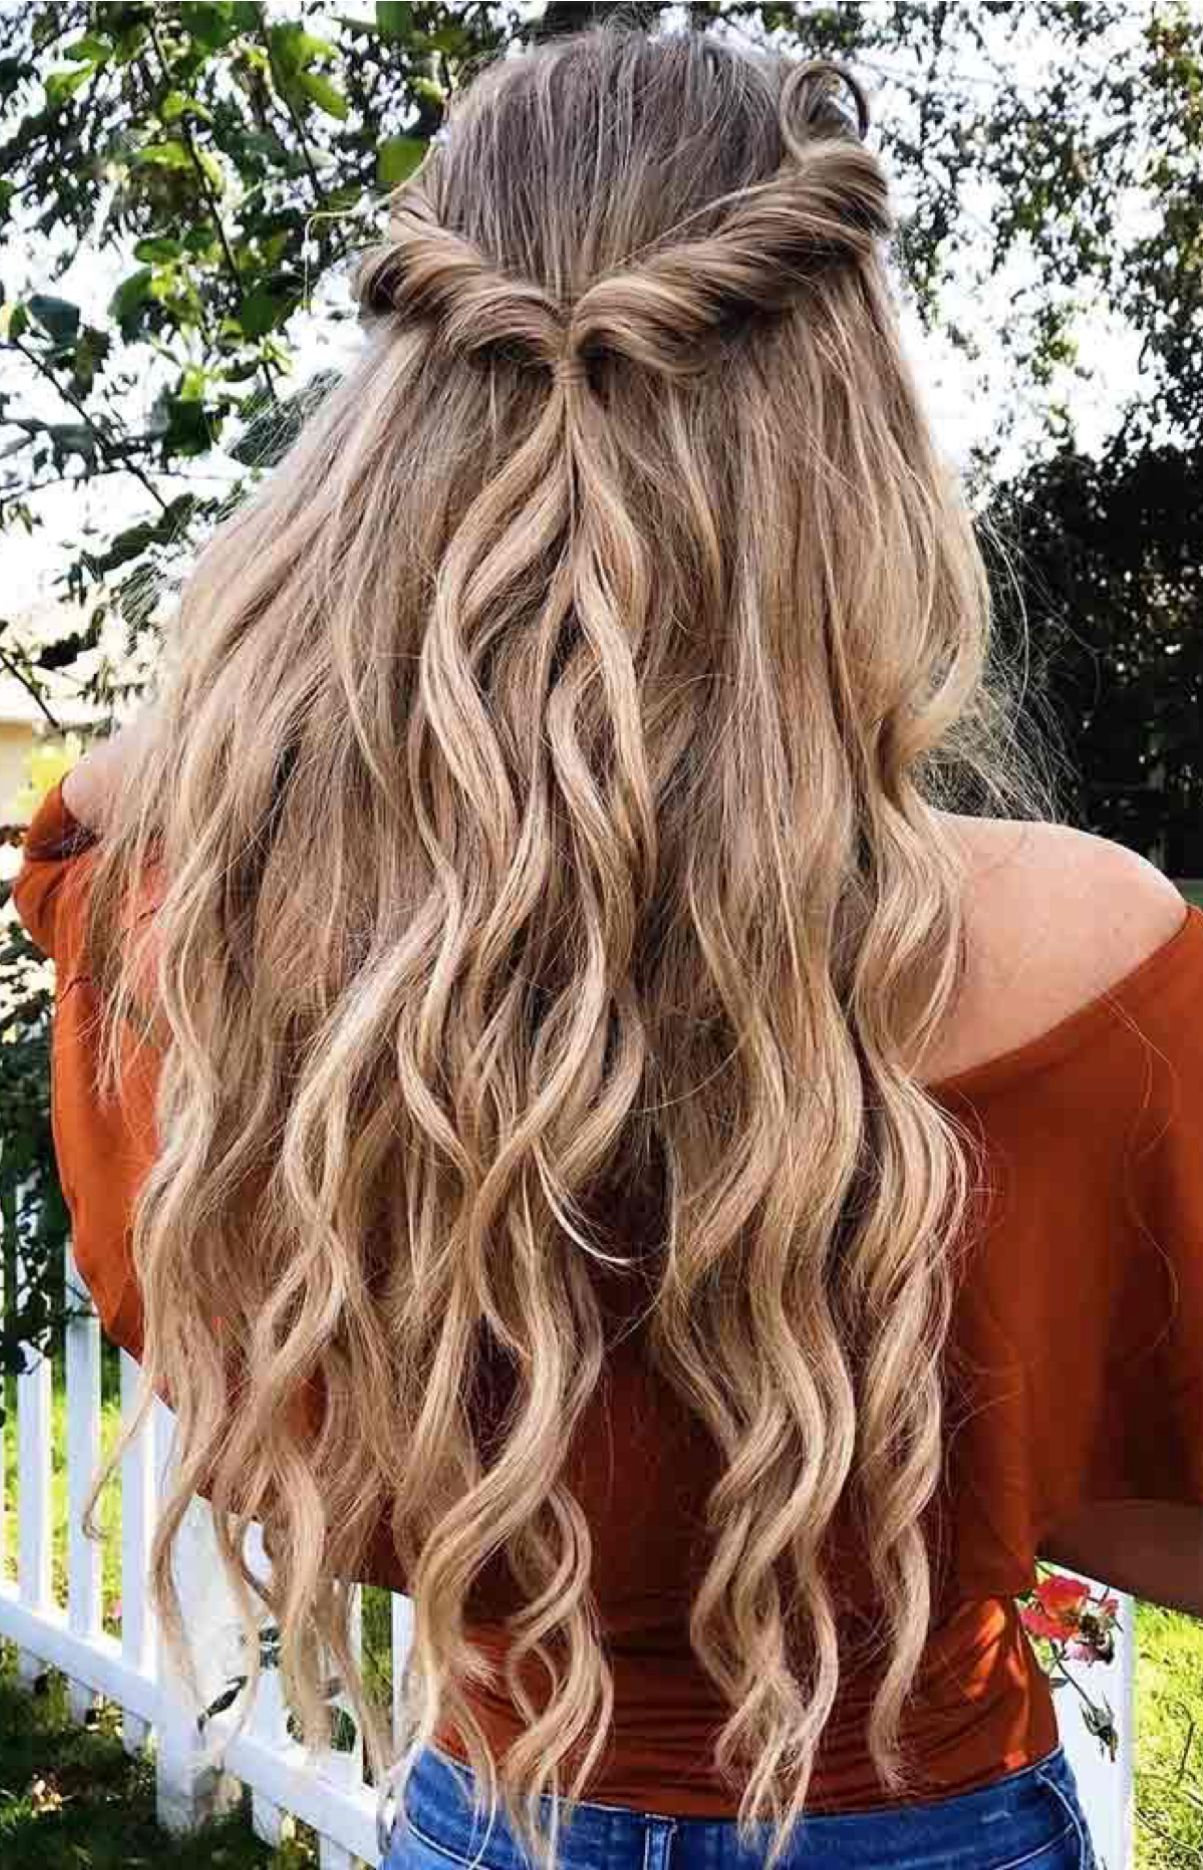 Gorgeous Ways To Wear Your Hair Down For Your Wedding Down Hairstyles Wedding Hair Inspiration Half Up Hair